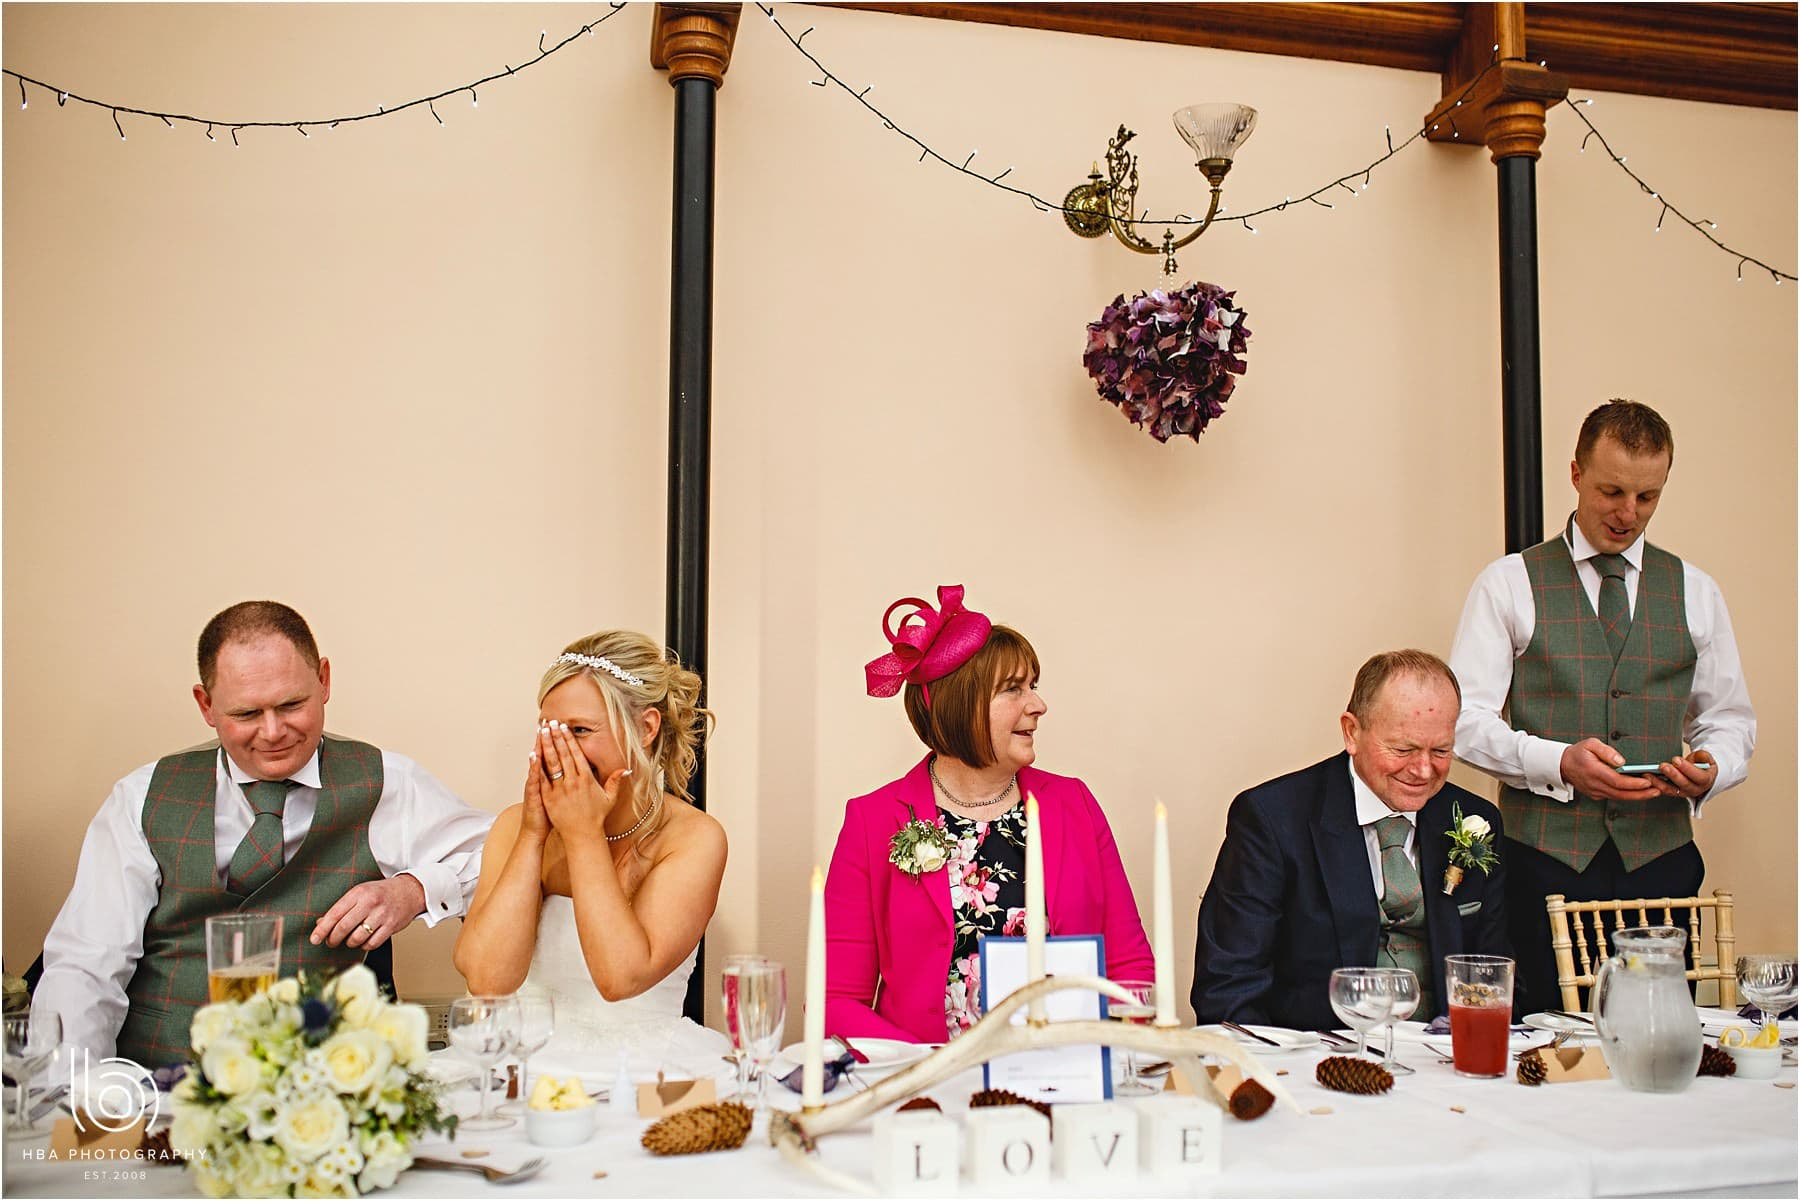 Laughing at the best man's speech